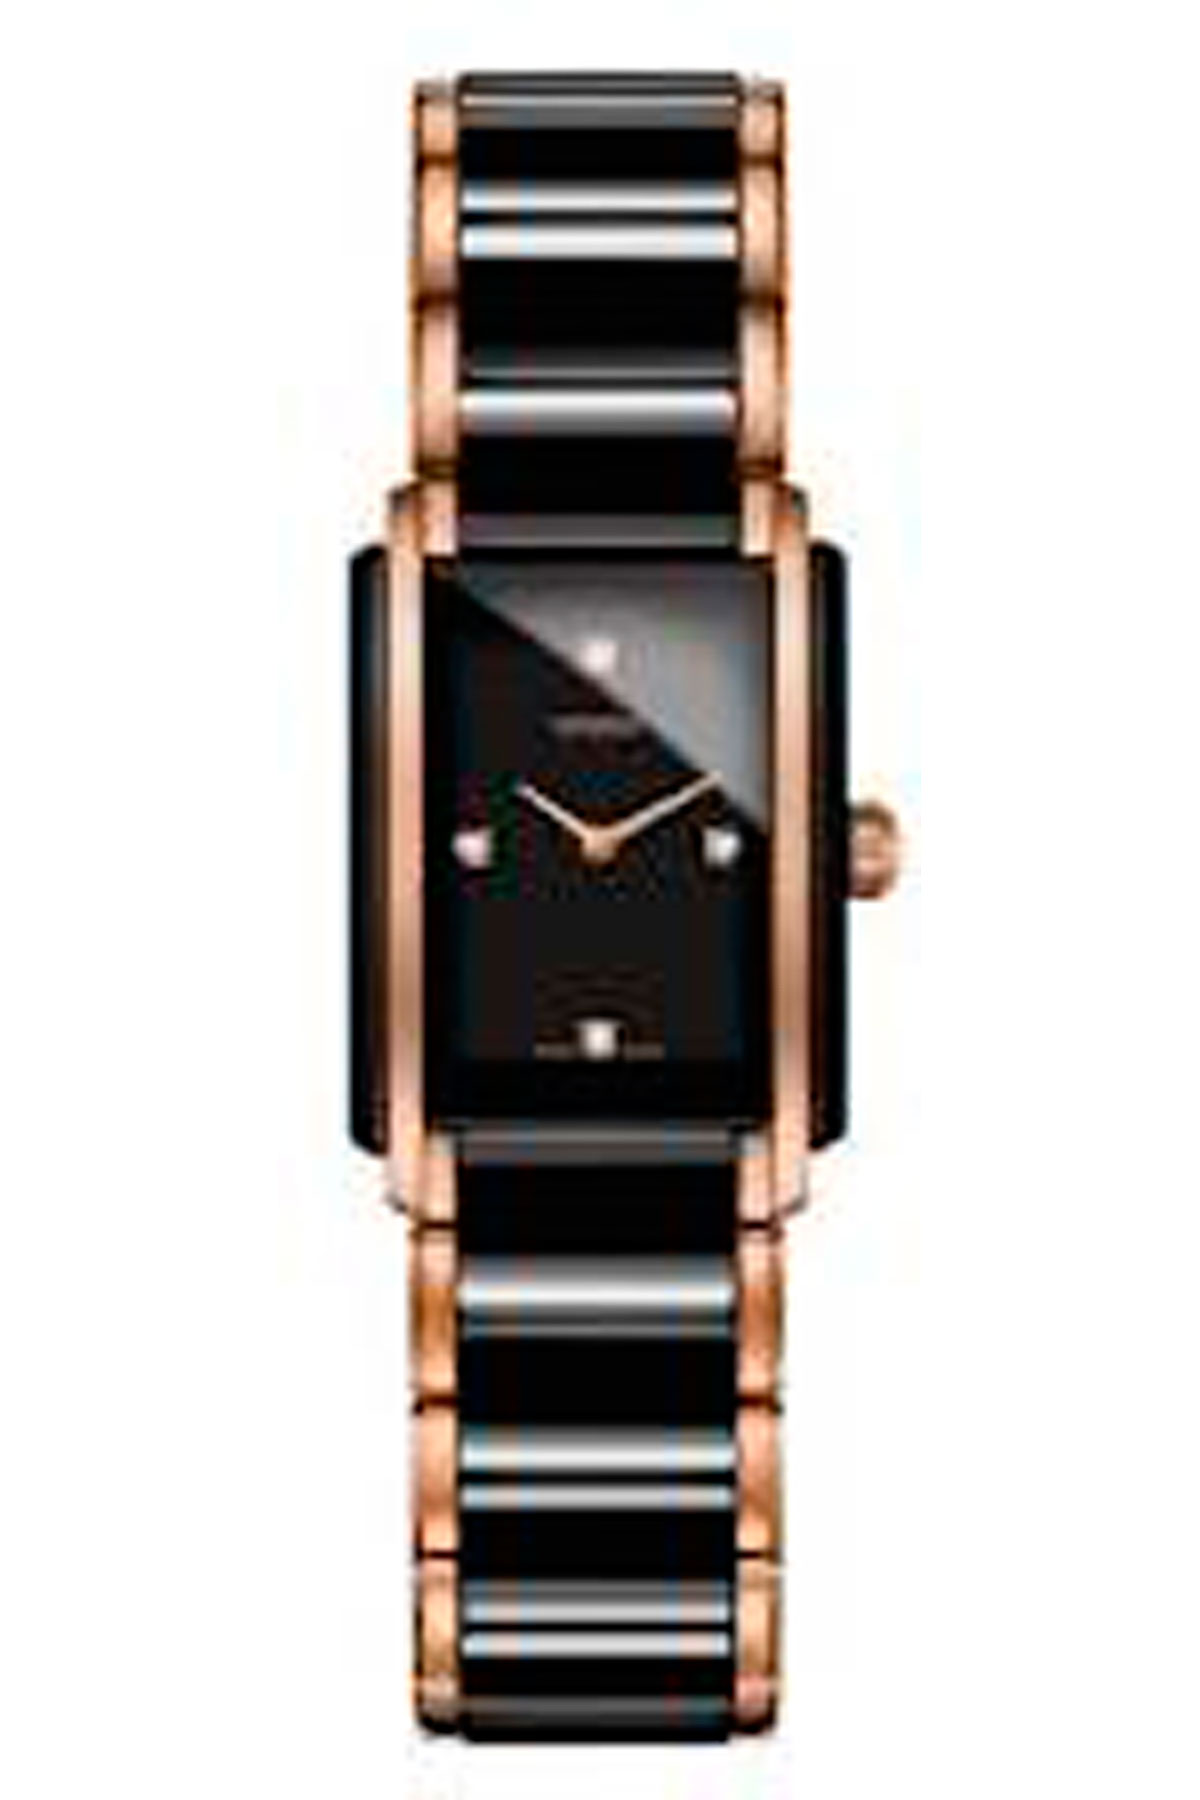 Rado Watch for Women, Add To Wishlistsend Via Emailshare This Watch Integral, Black, High-Tech Ceramic, 2019